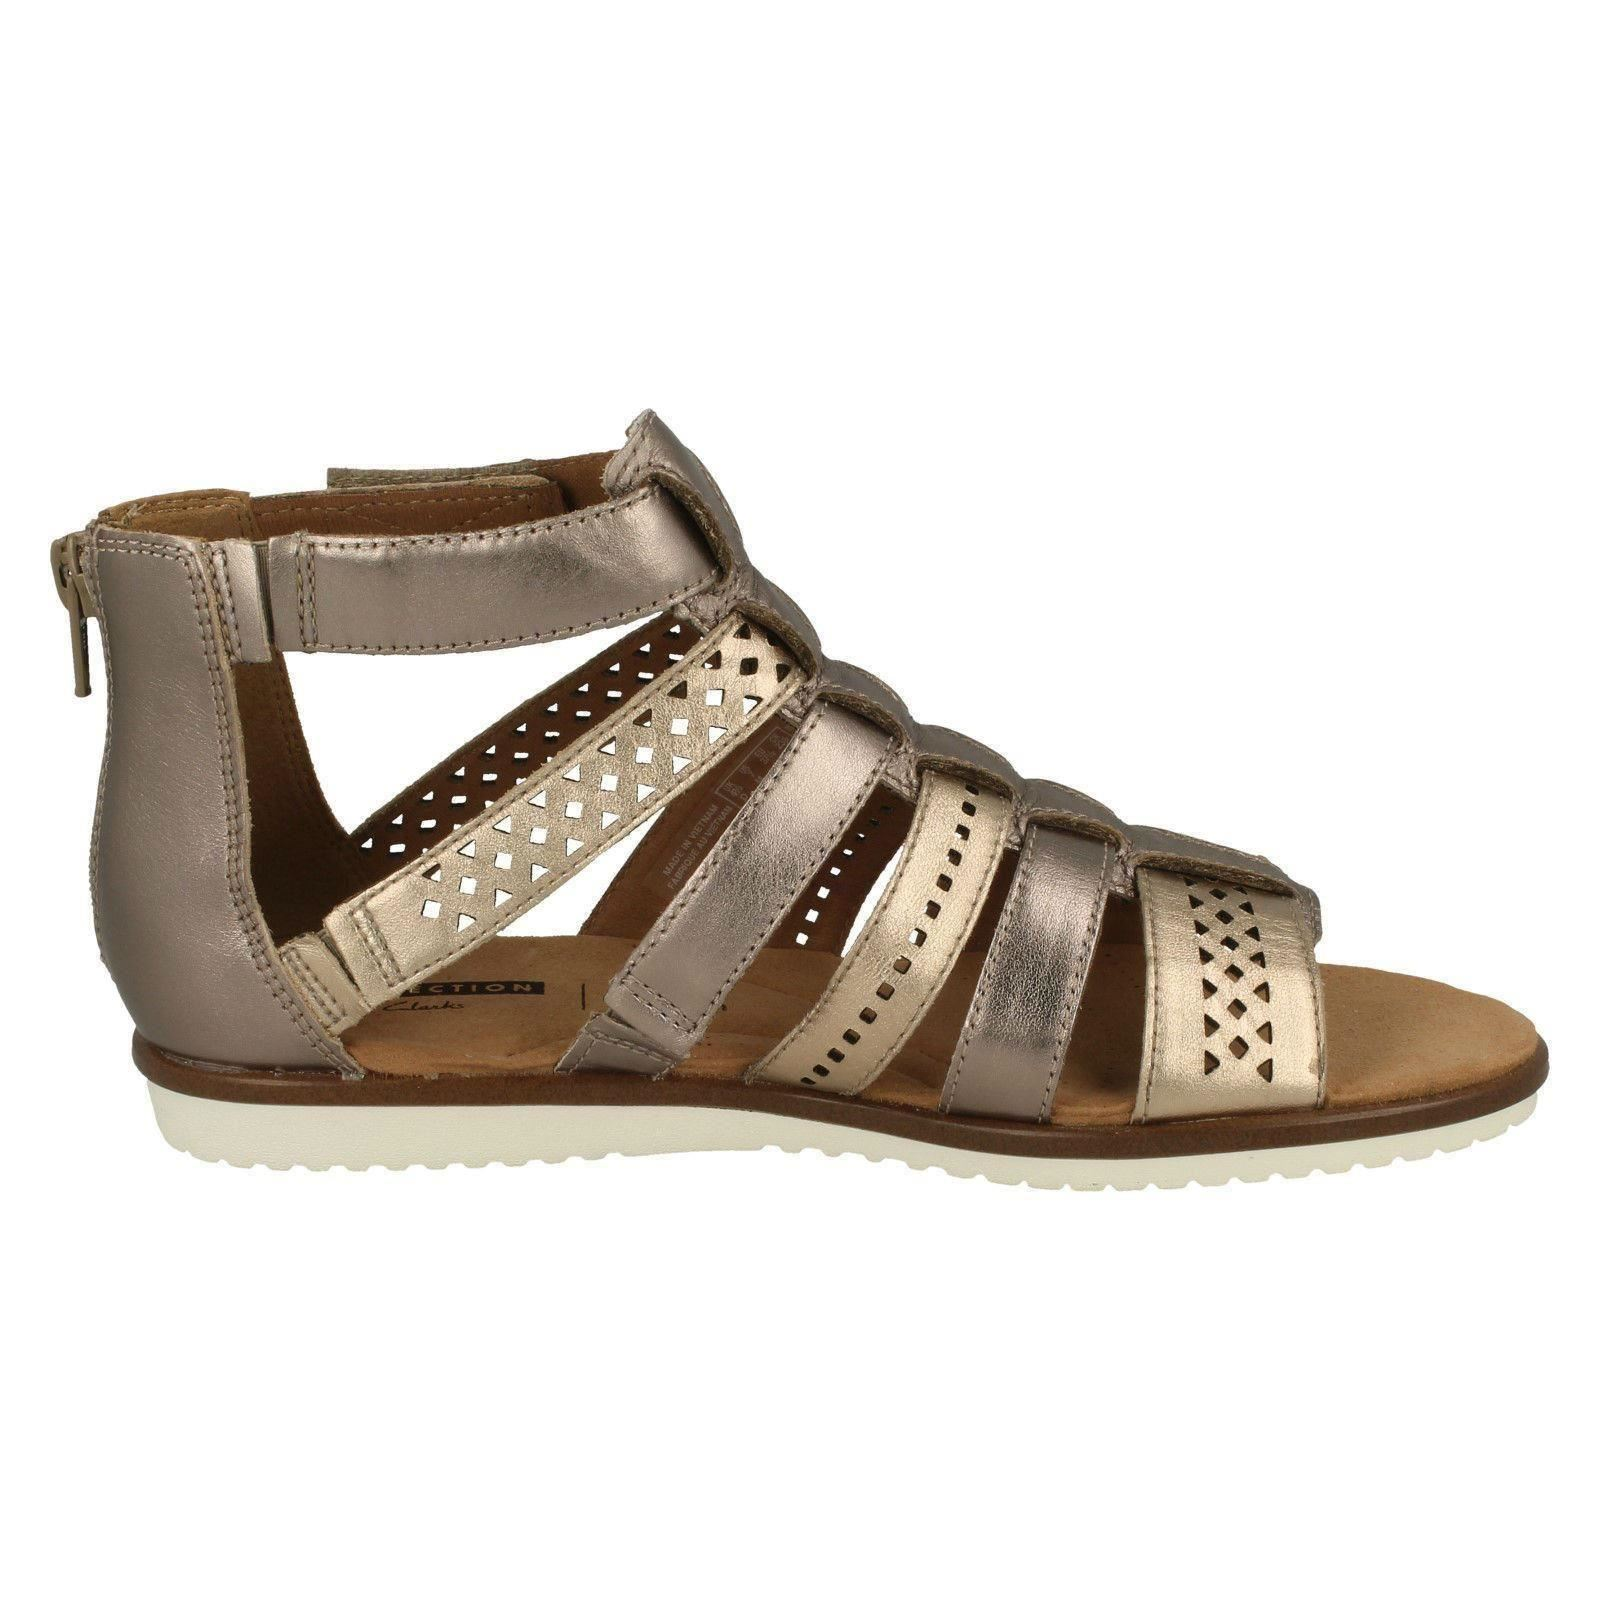 be9f8efb5 Ladies-Clarks-Kele-Lotus-Gladiator-Sandals thumbnail 7